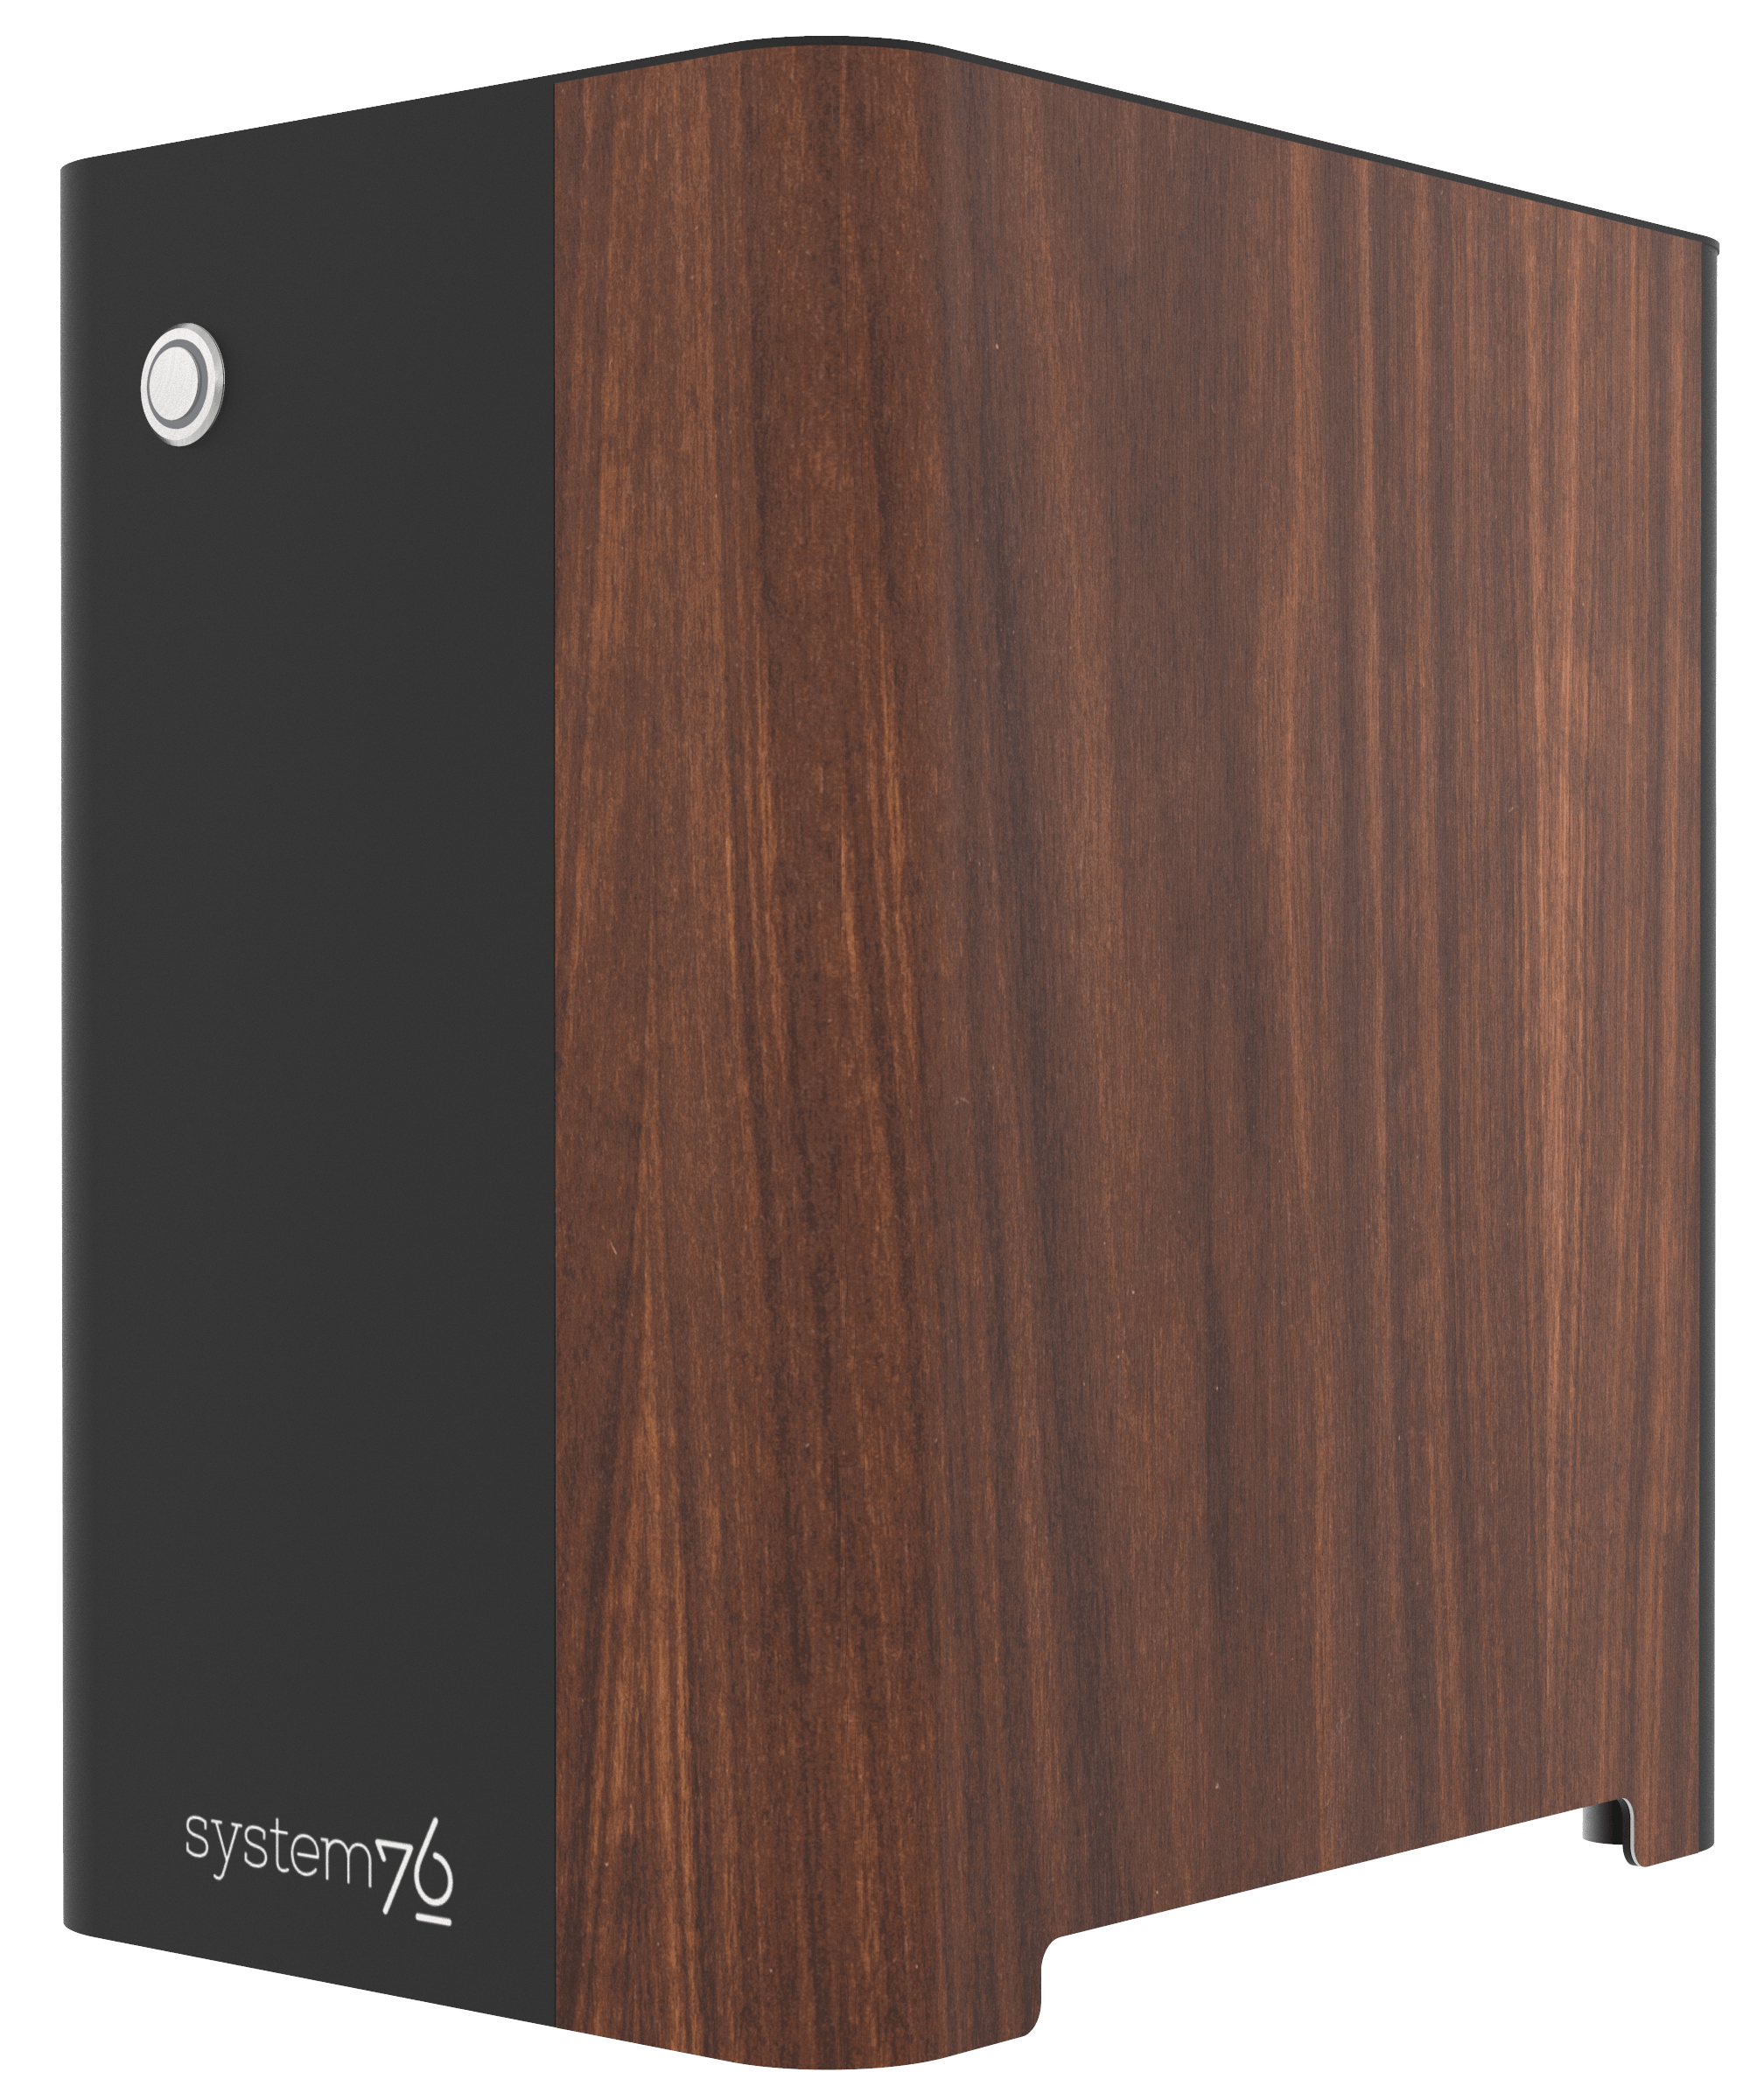 Side view of the machine showing walnut veneer component.